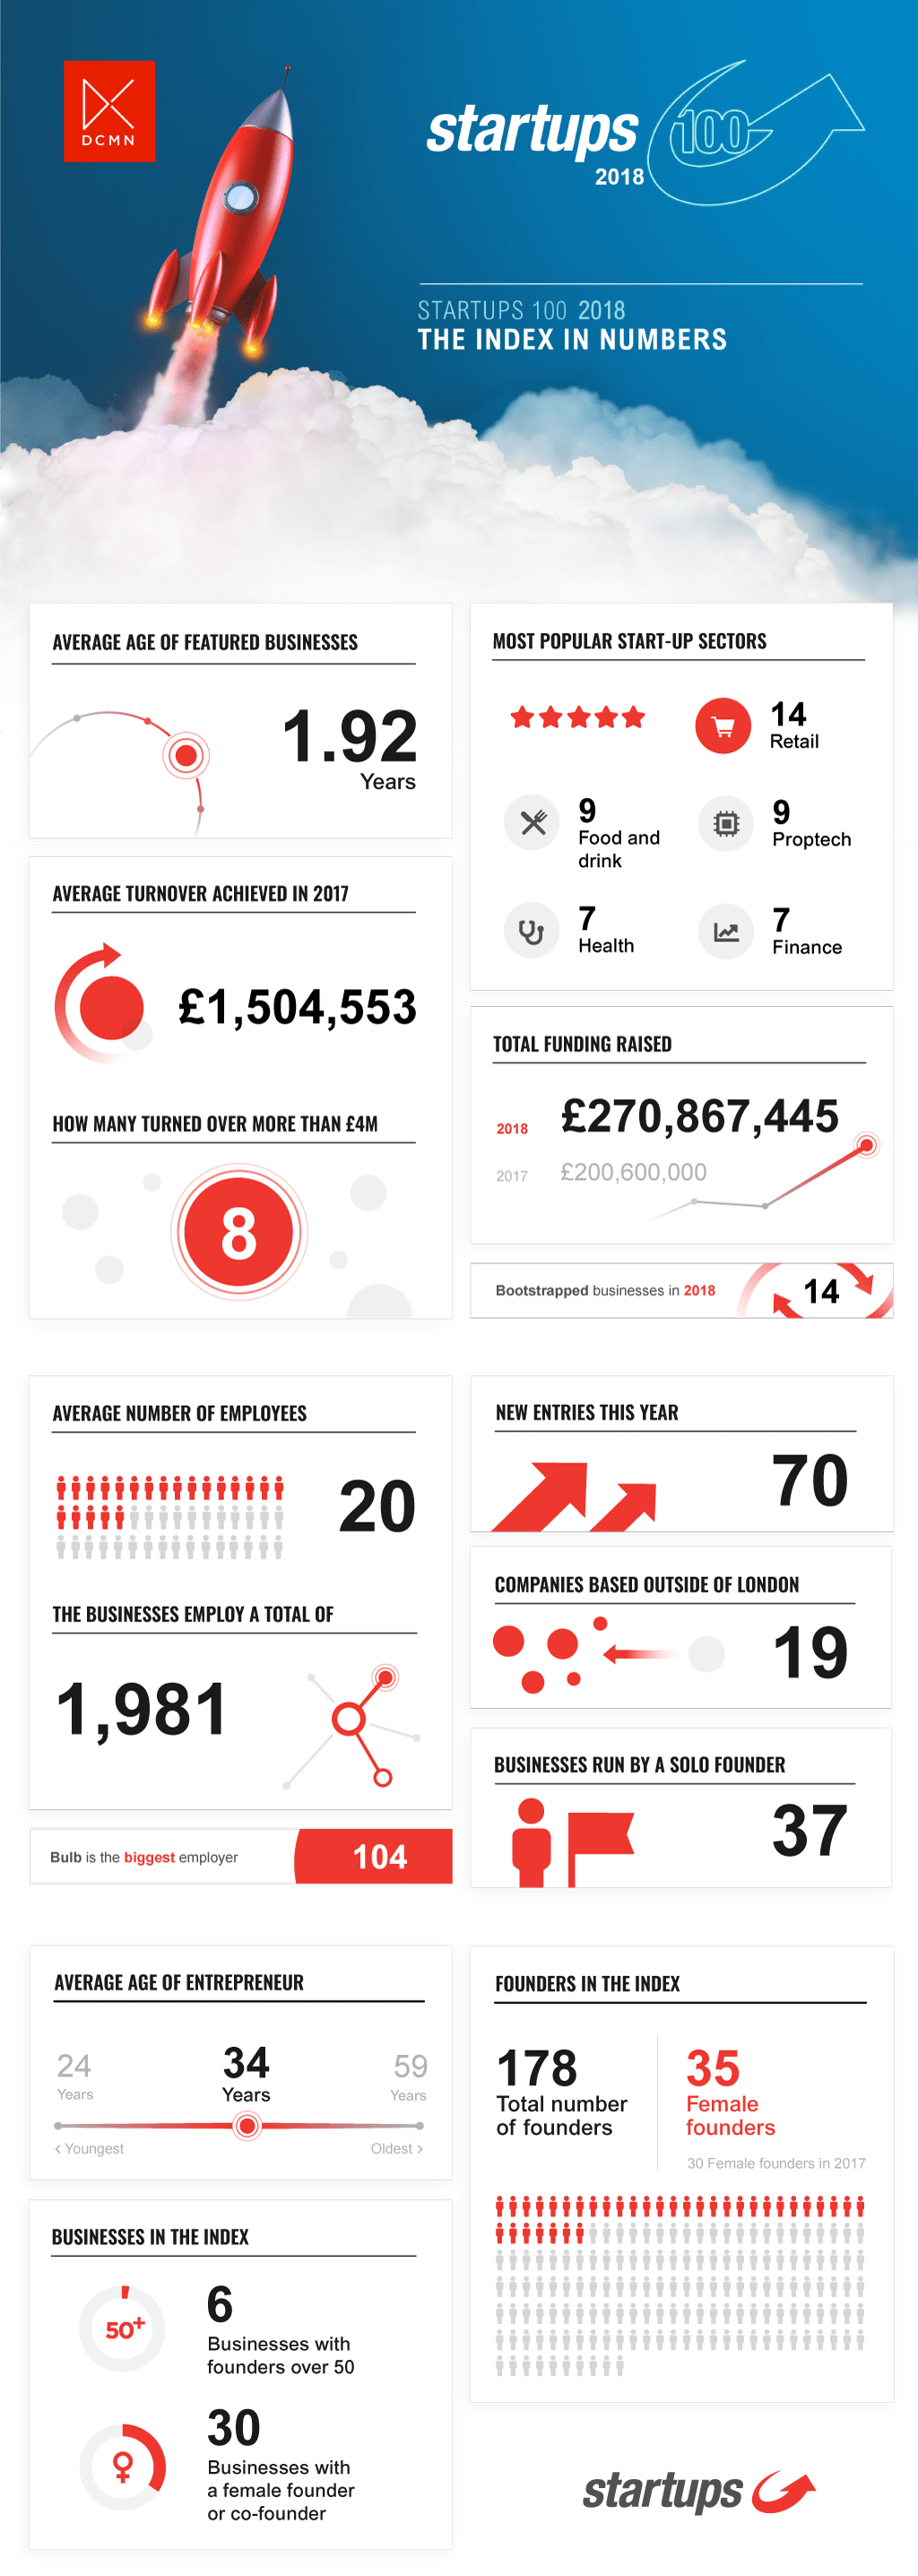 Startups 100 2018 infographic